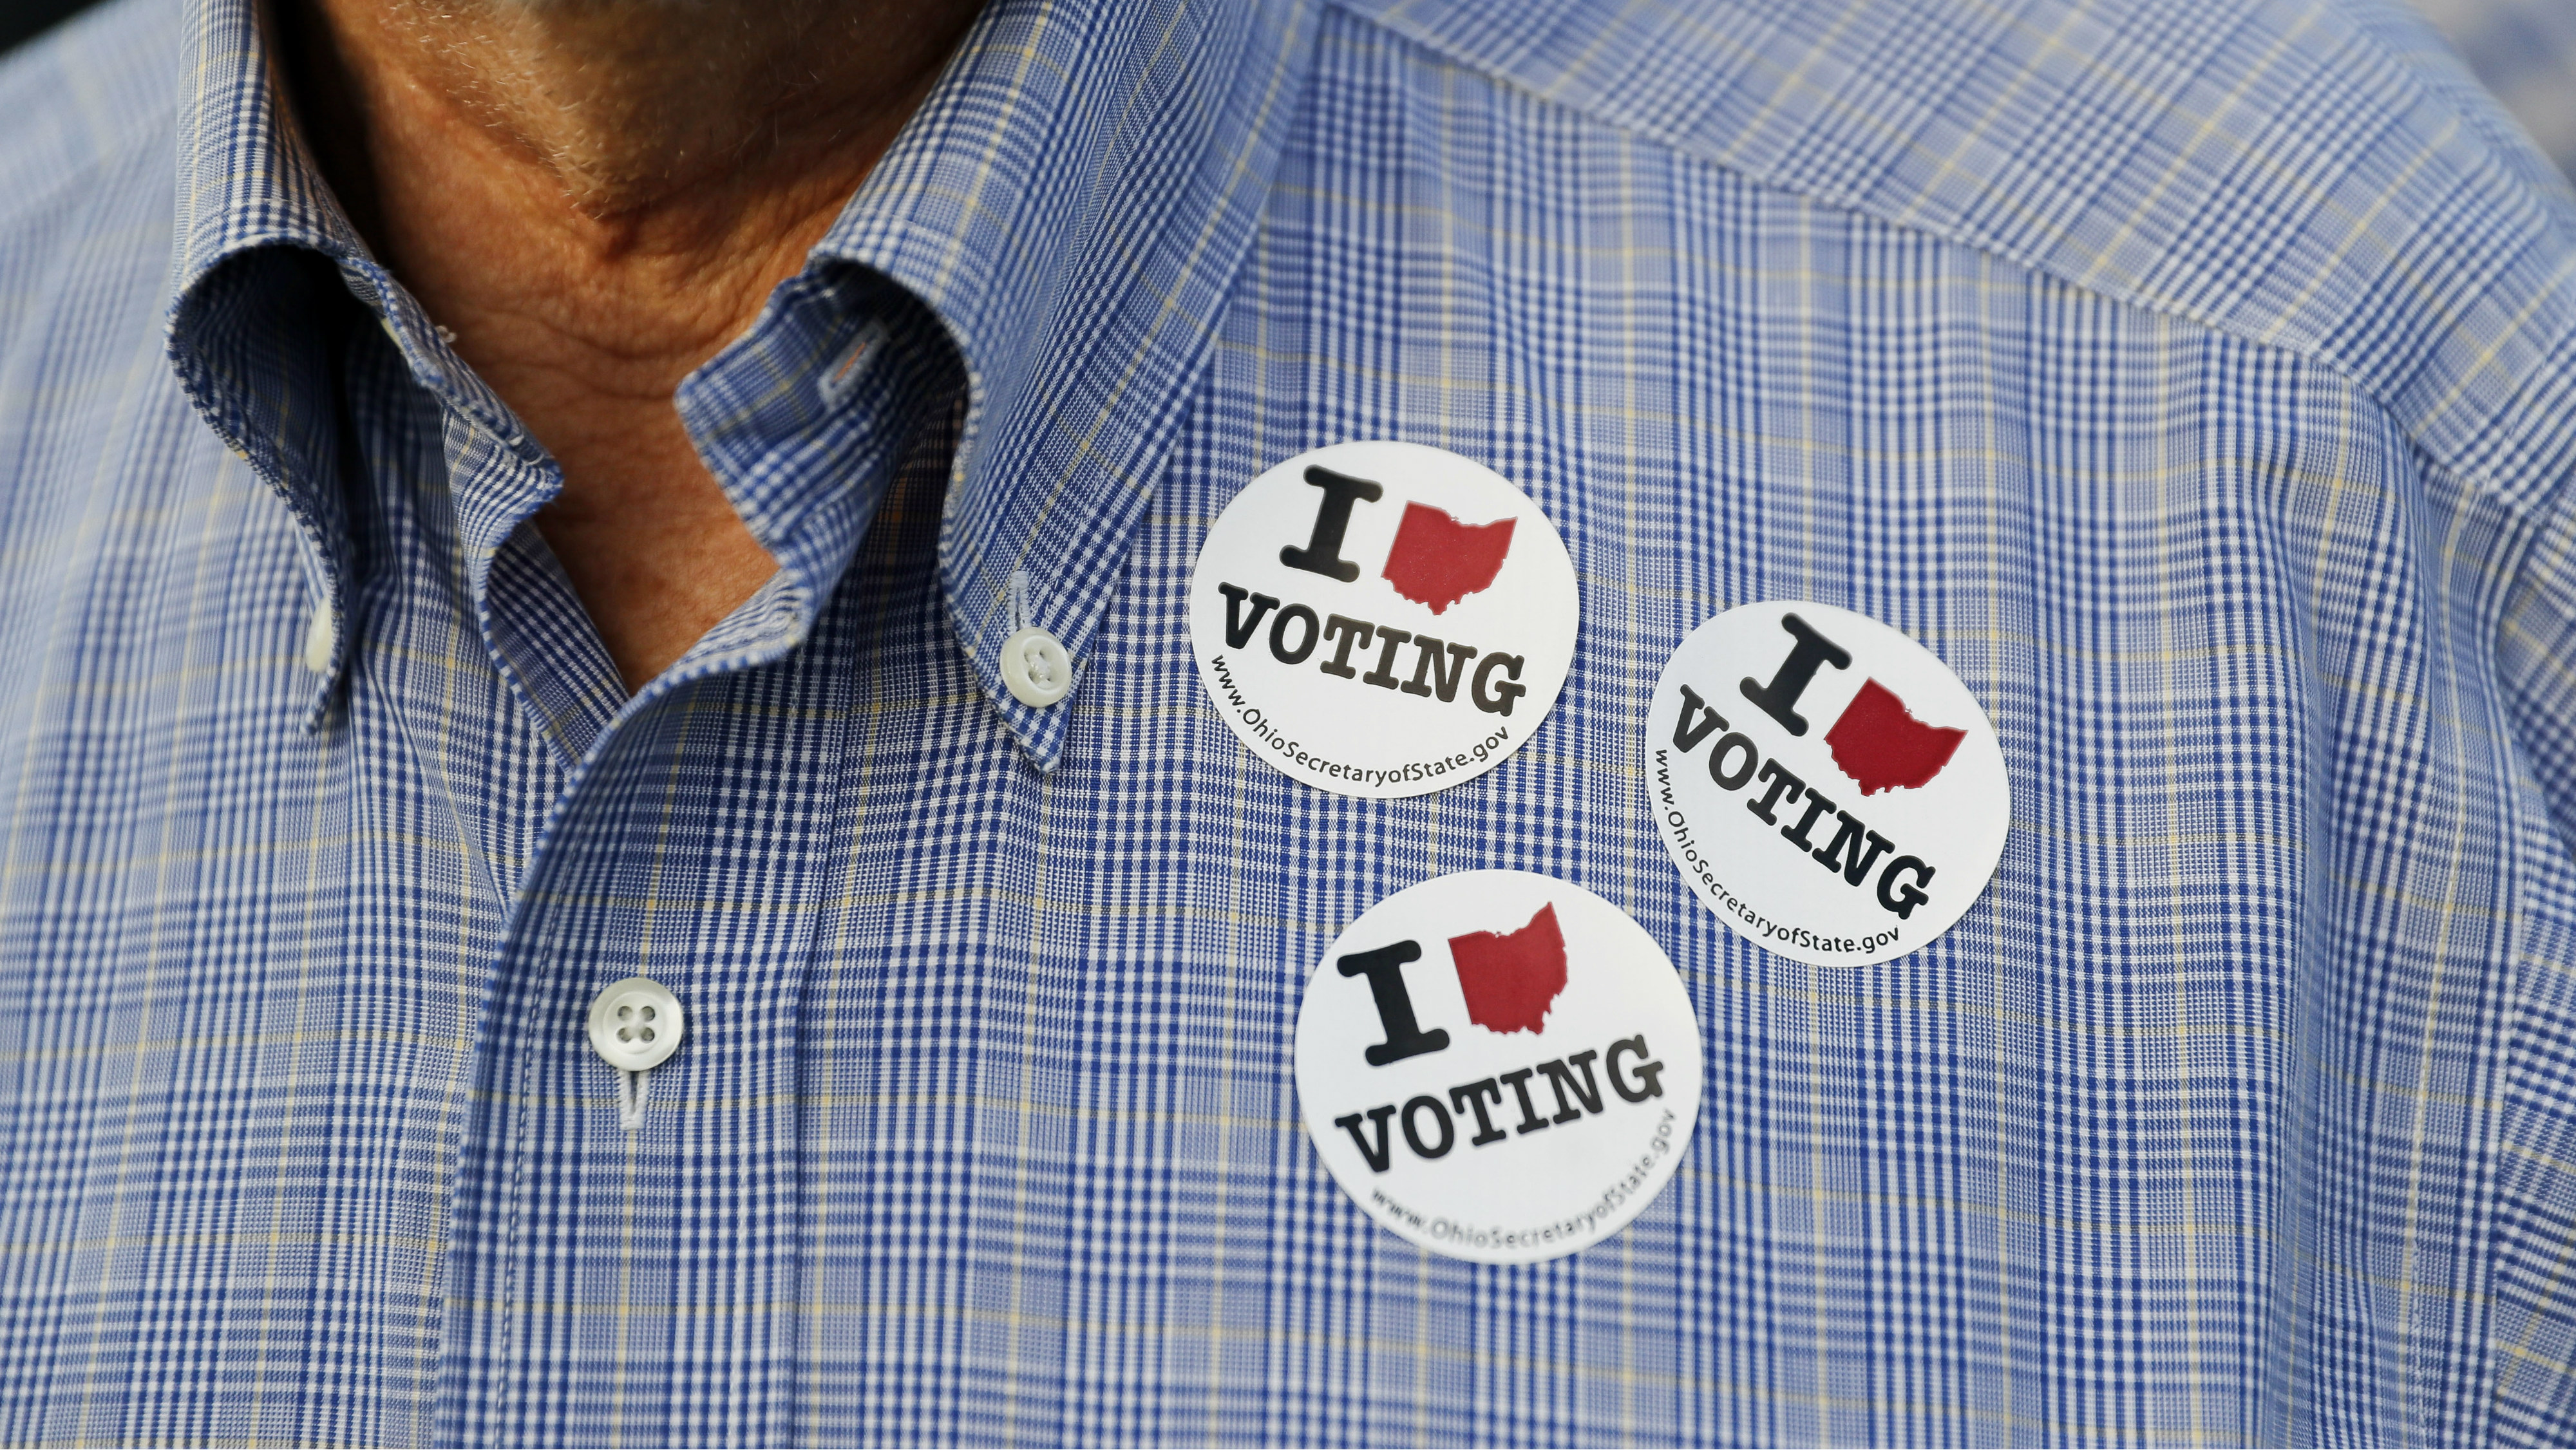 A person with voting stickers on their shirt.